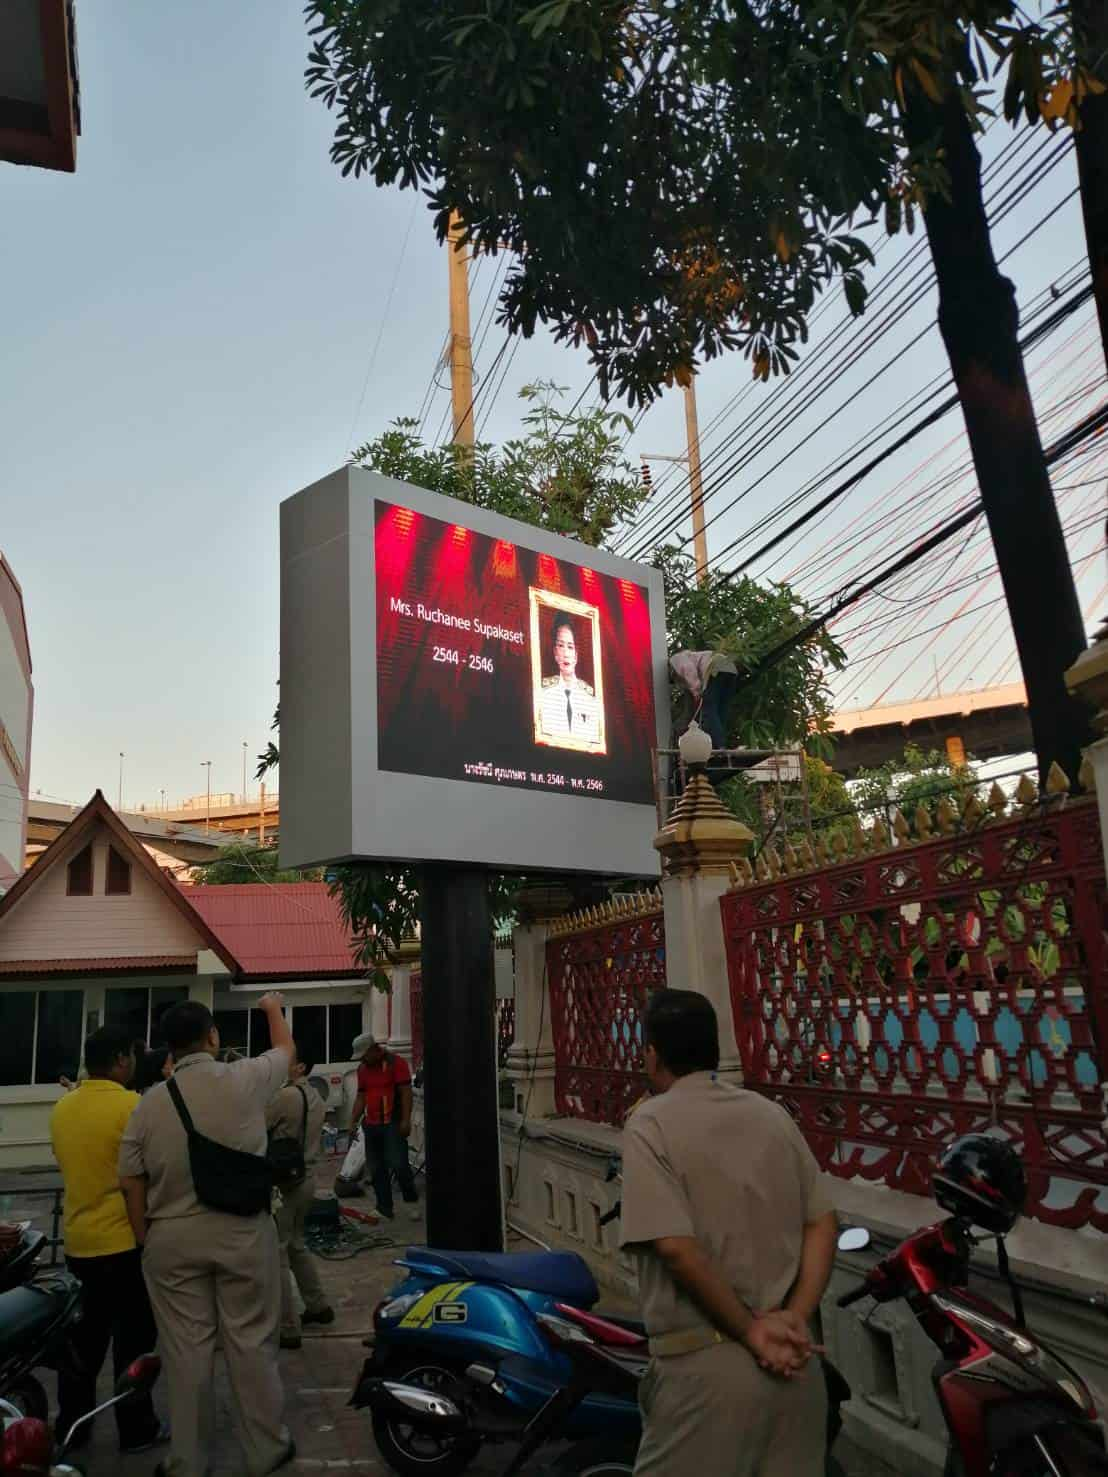 P5 Outdoor Led Screen Display รร.วัดทรงธรรม